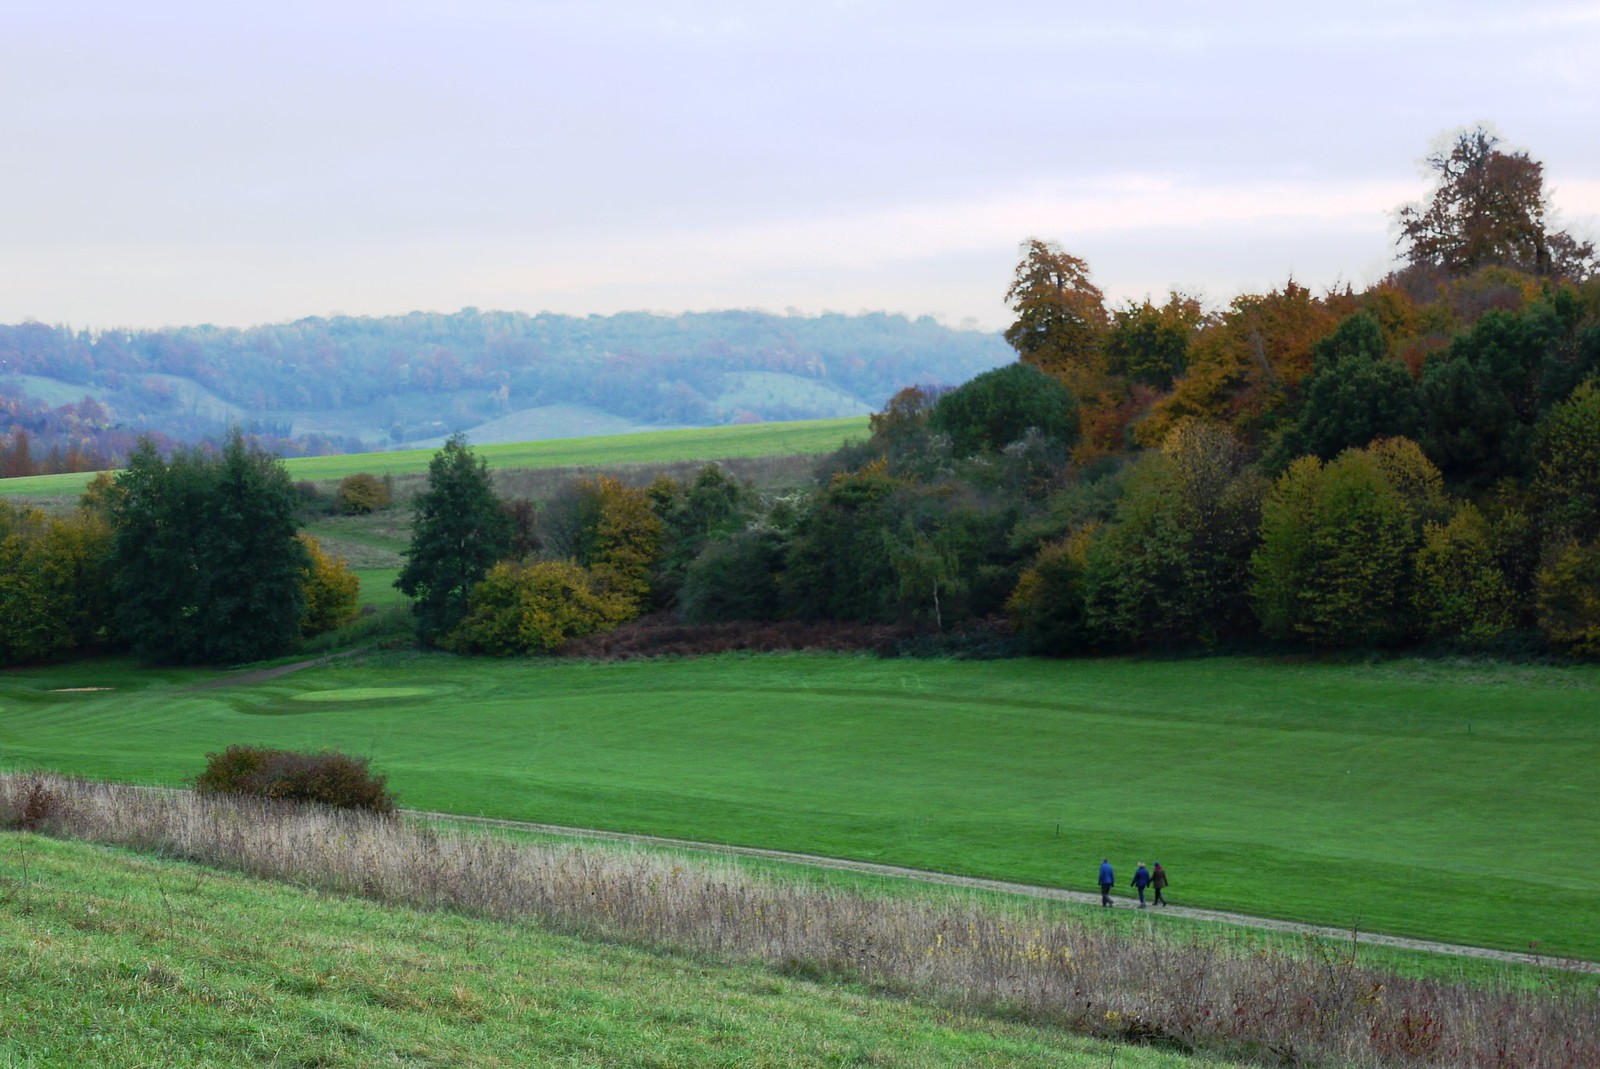 Lullingstone Park Golf Course Otford to Eynsford